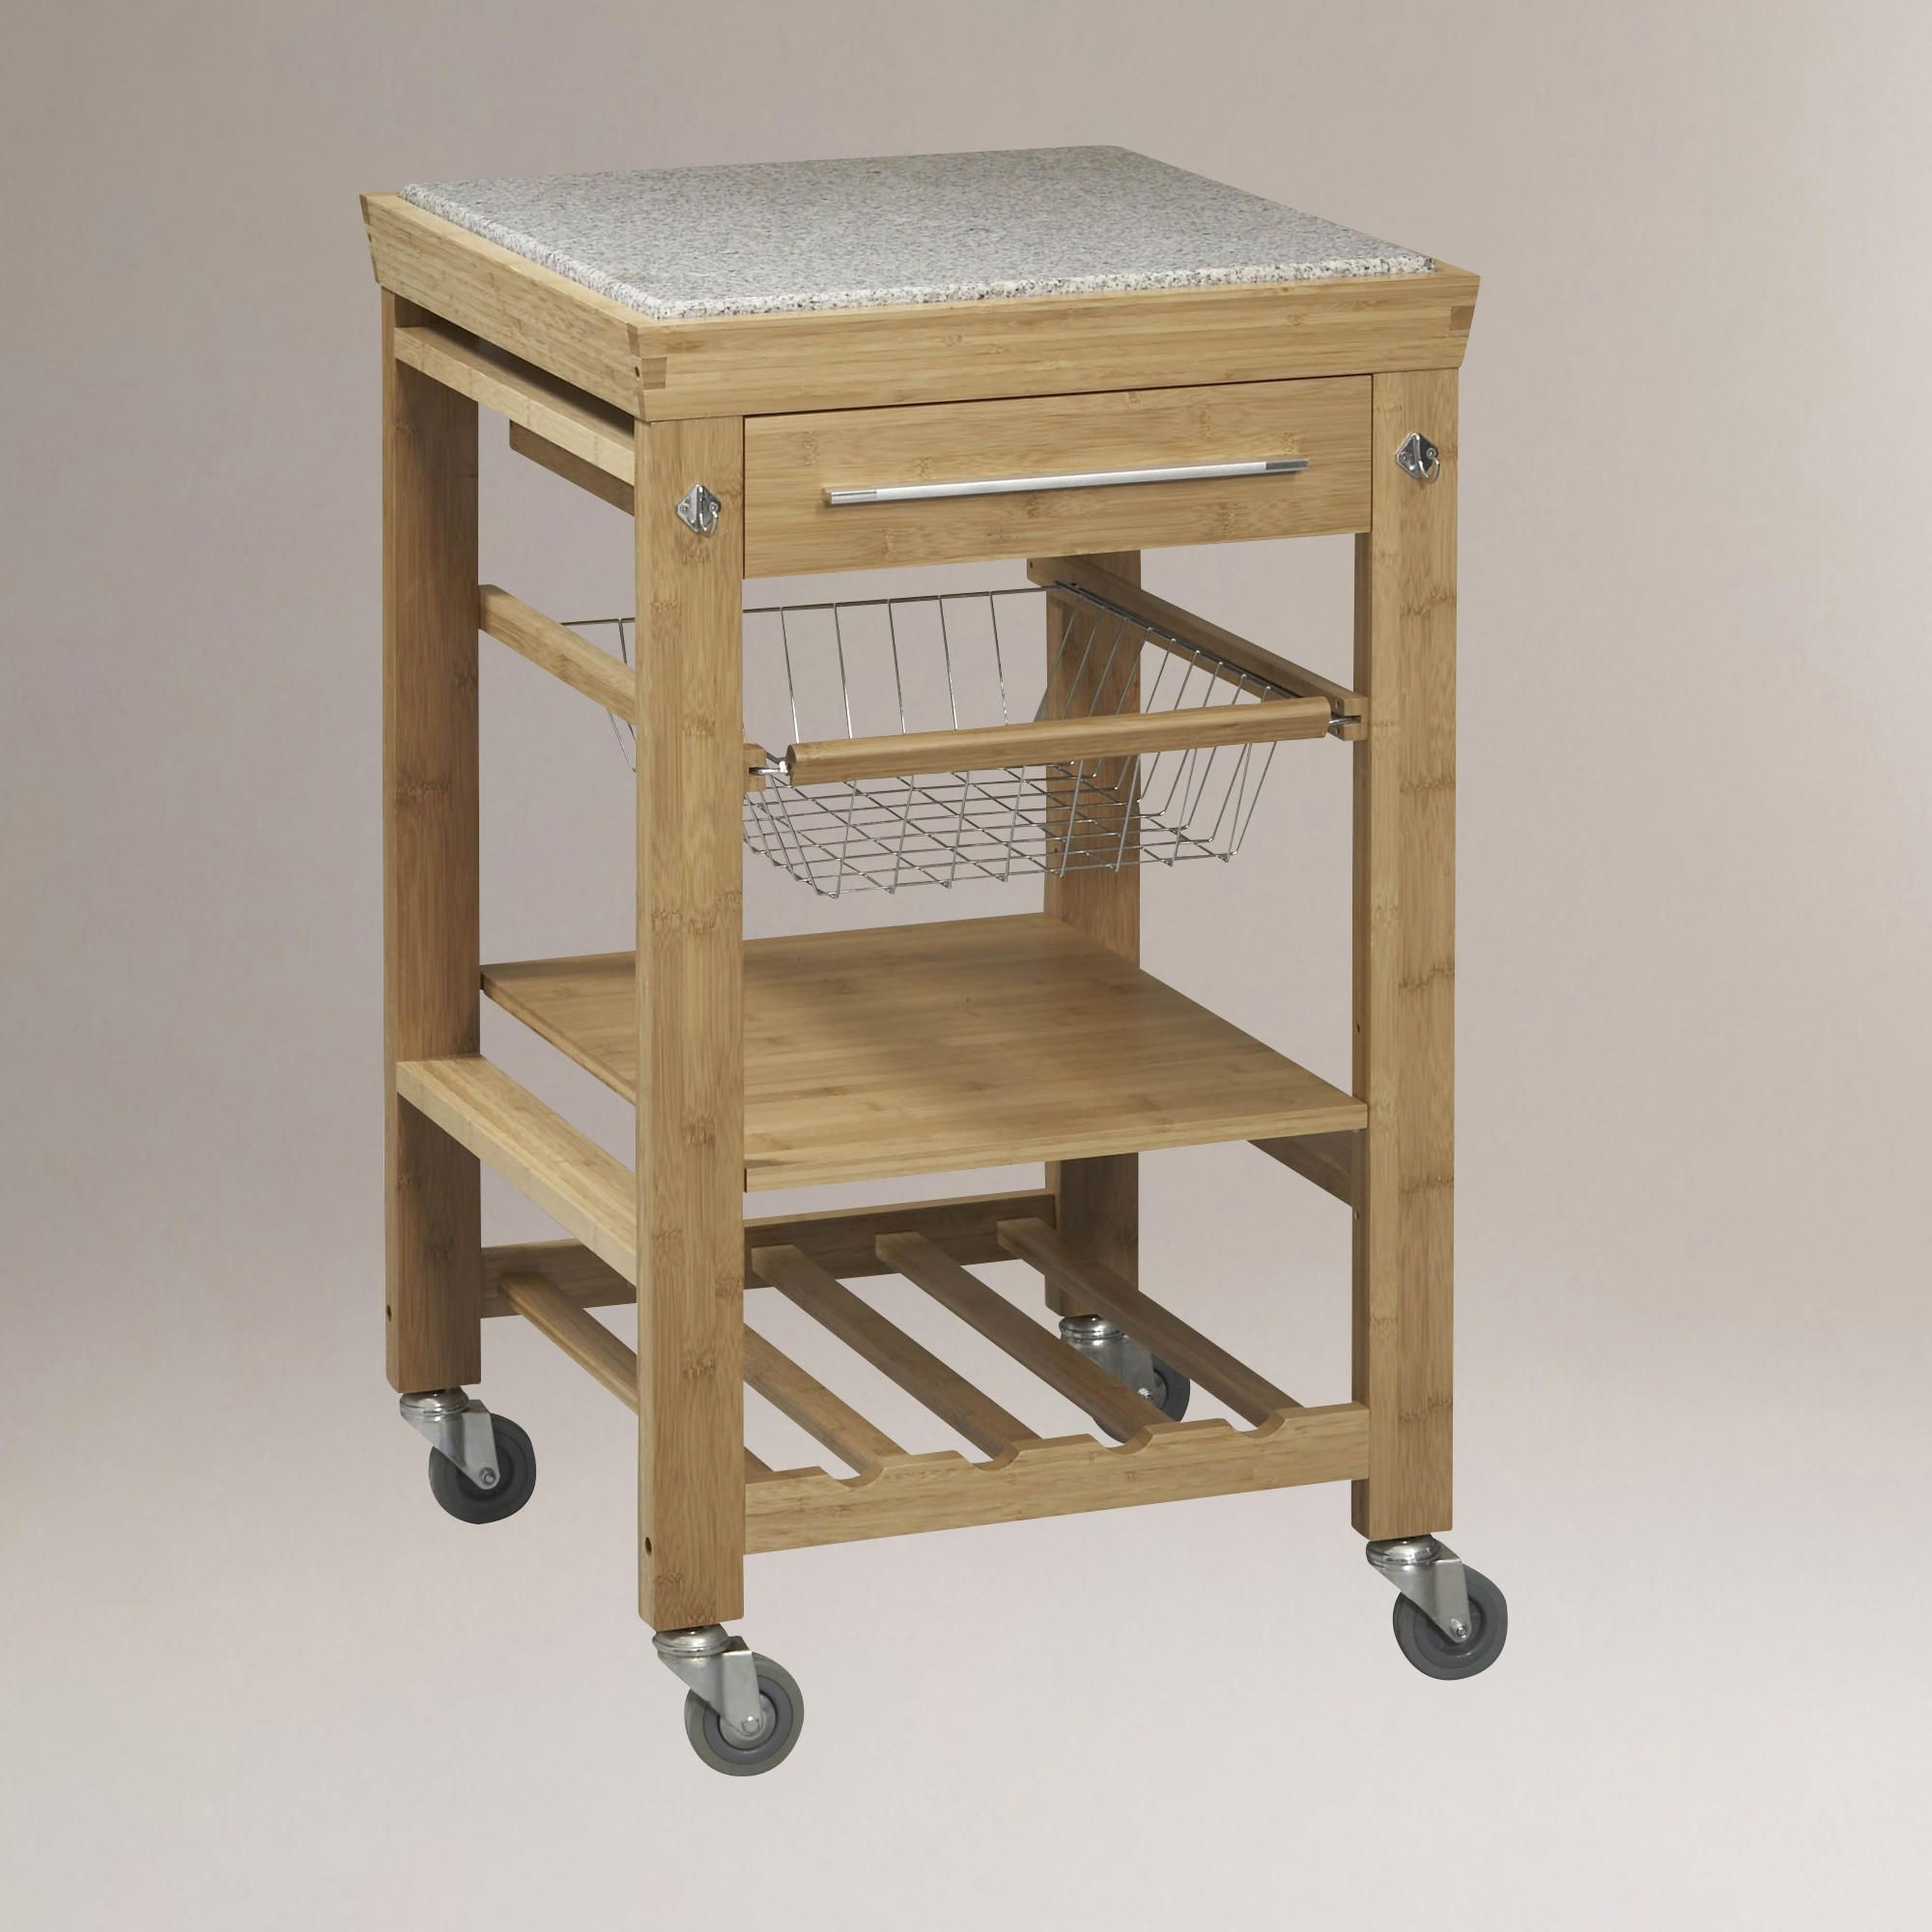 Bamboo Newhall Kitchen Island | World Market $179 | Home ...